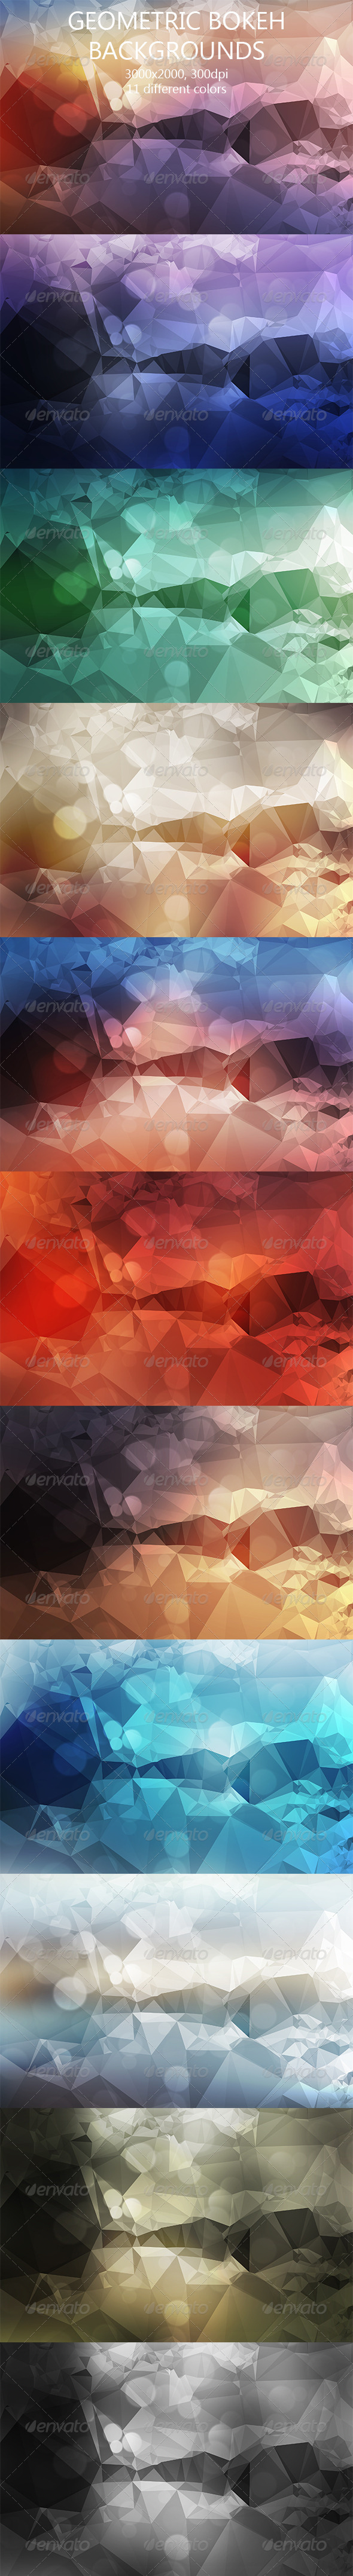 GraphicRiver Geometric Bokeh Backgrounds 8134734